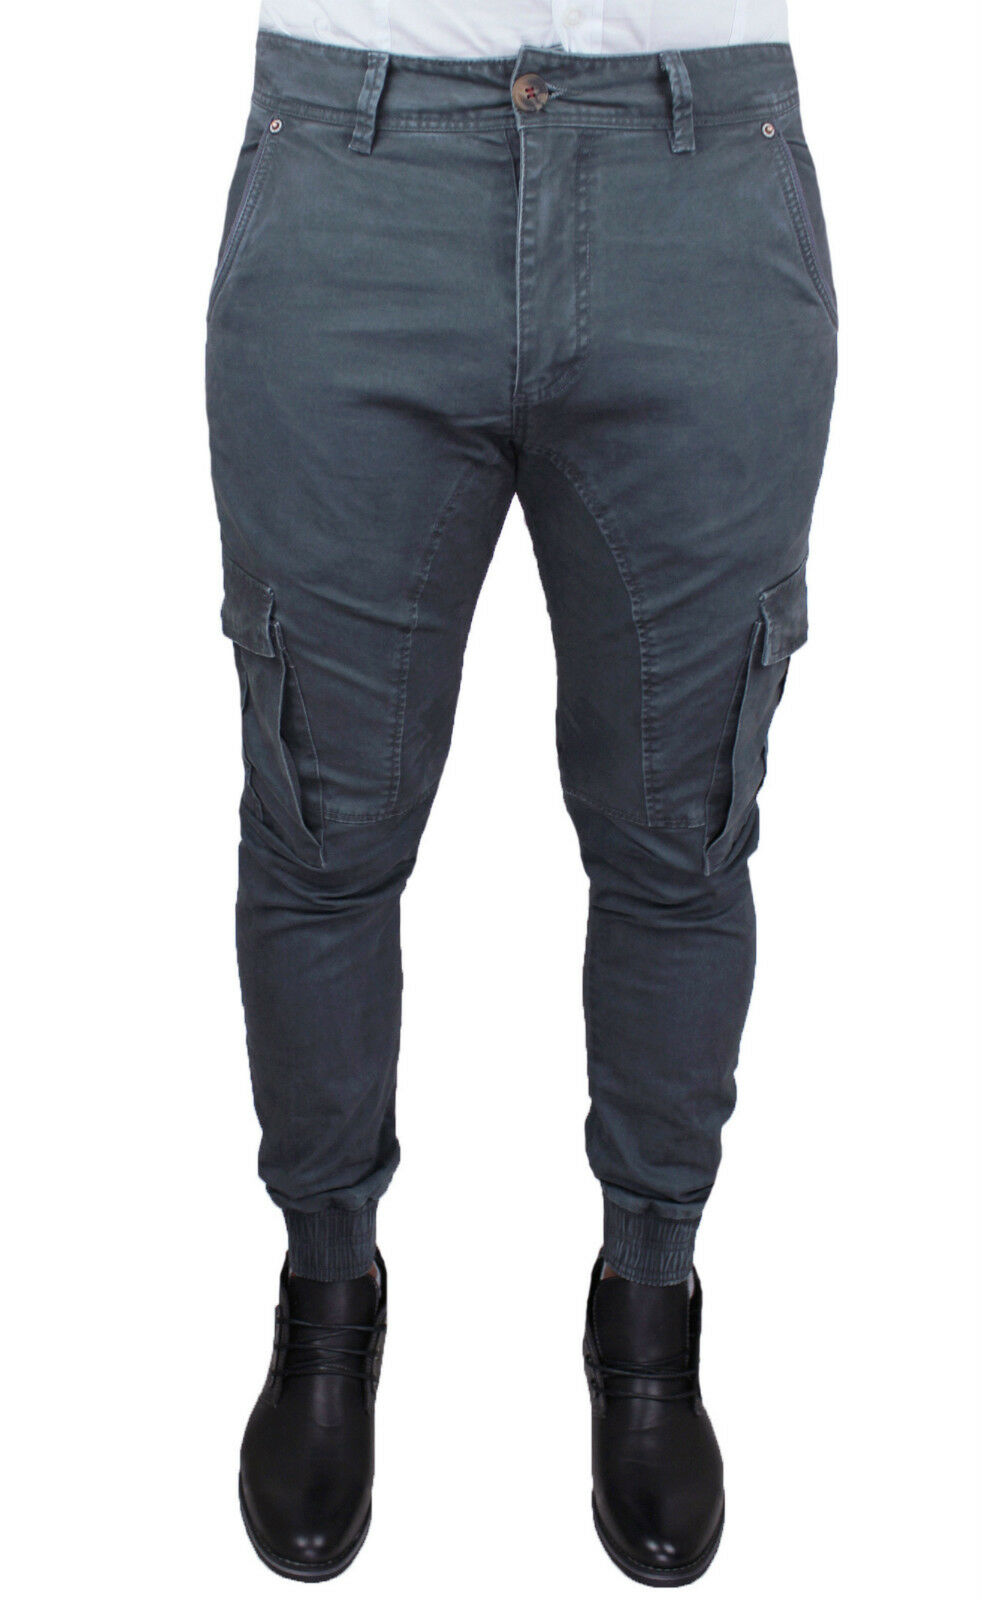 PANTALONI men DIAMOND CARGO grey INVERNALE SLIM ADERENTE  42 44 46 48 50 52